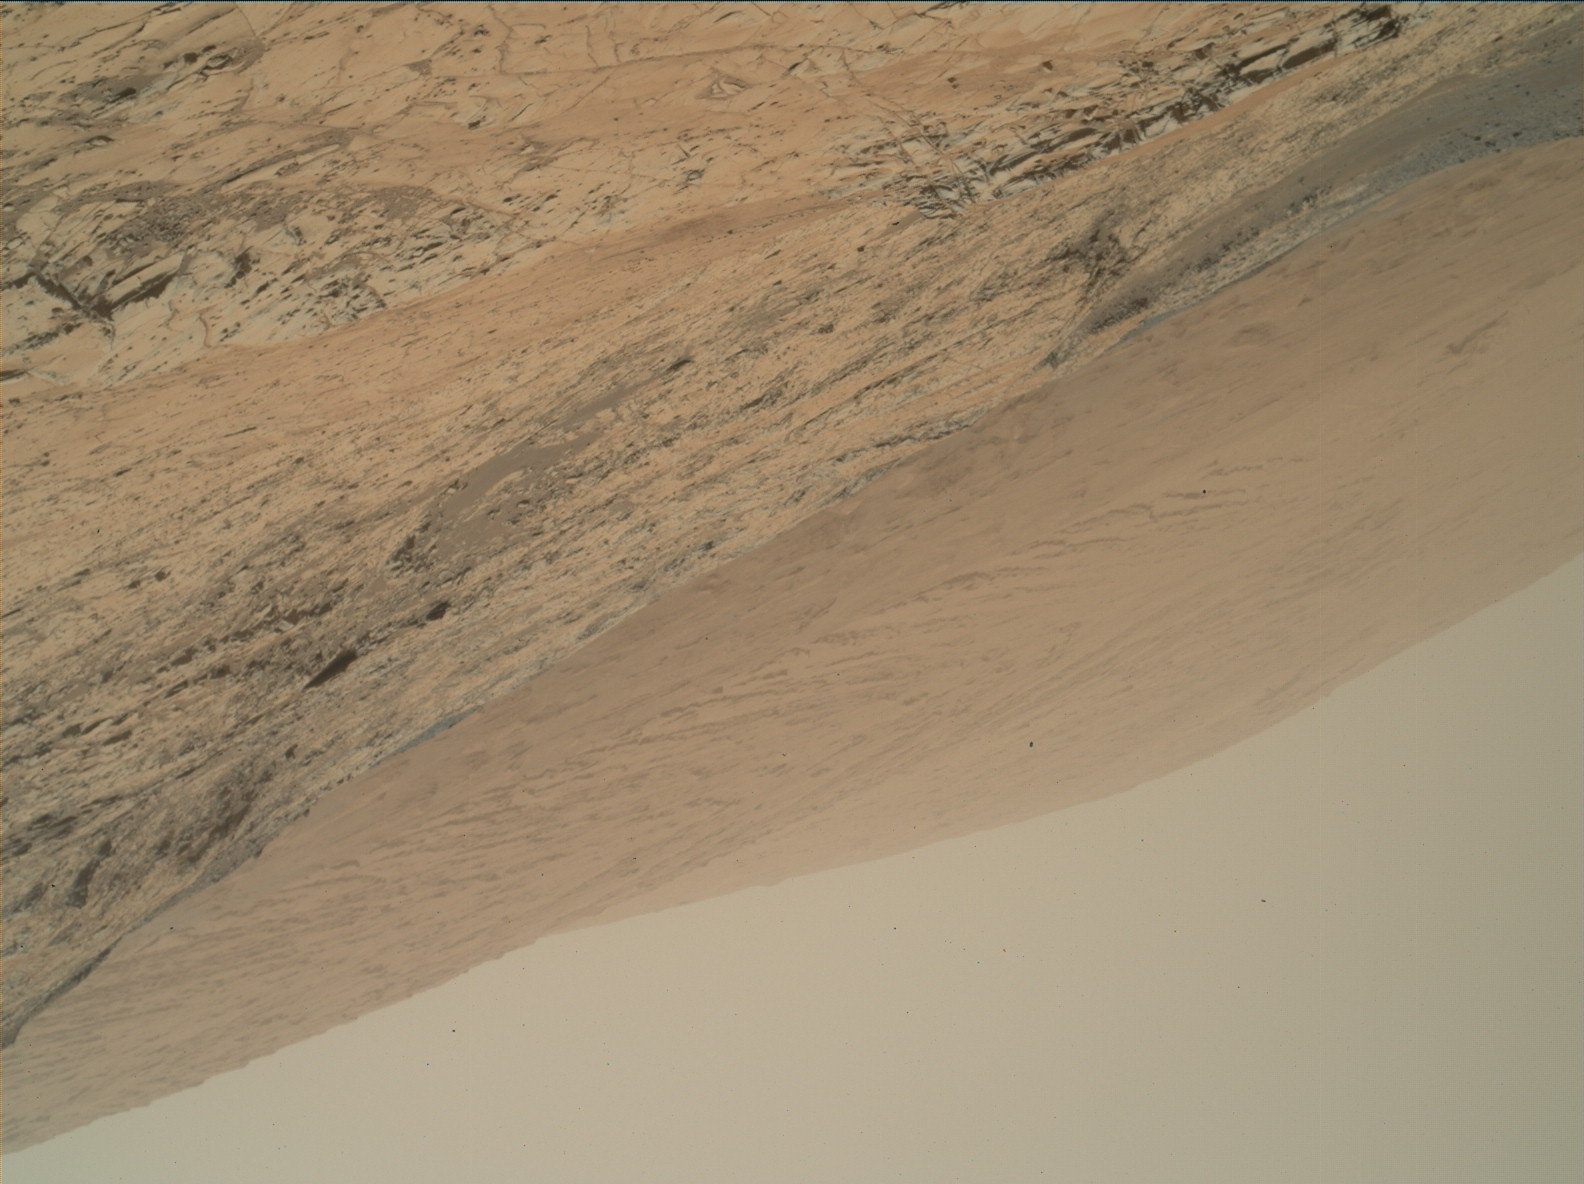 Nasa's Mars rover Curiosity acquired this image using its Mars Hand Lens Imager (MAHLI) on Sol 882